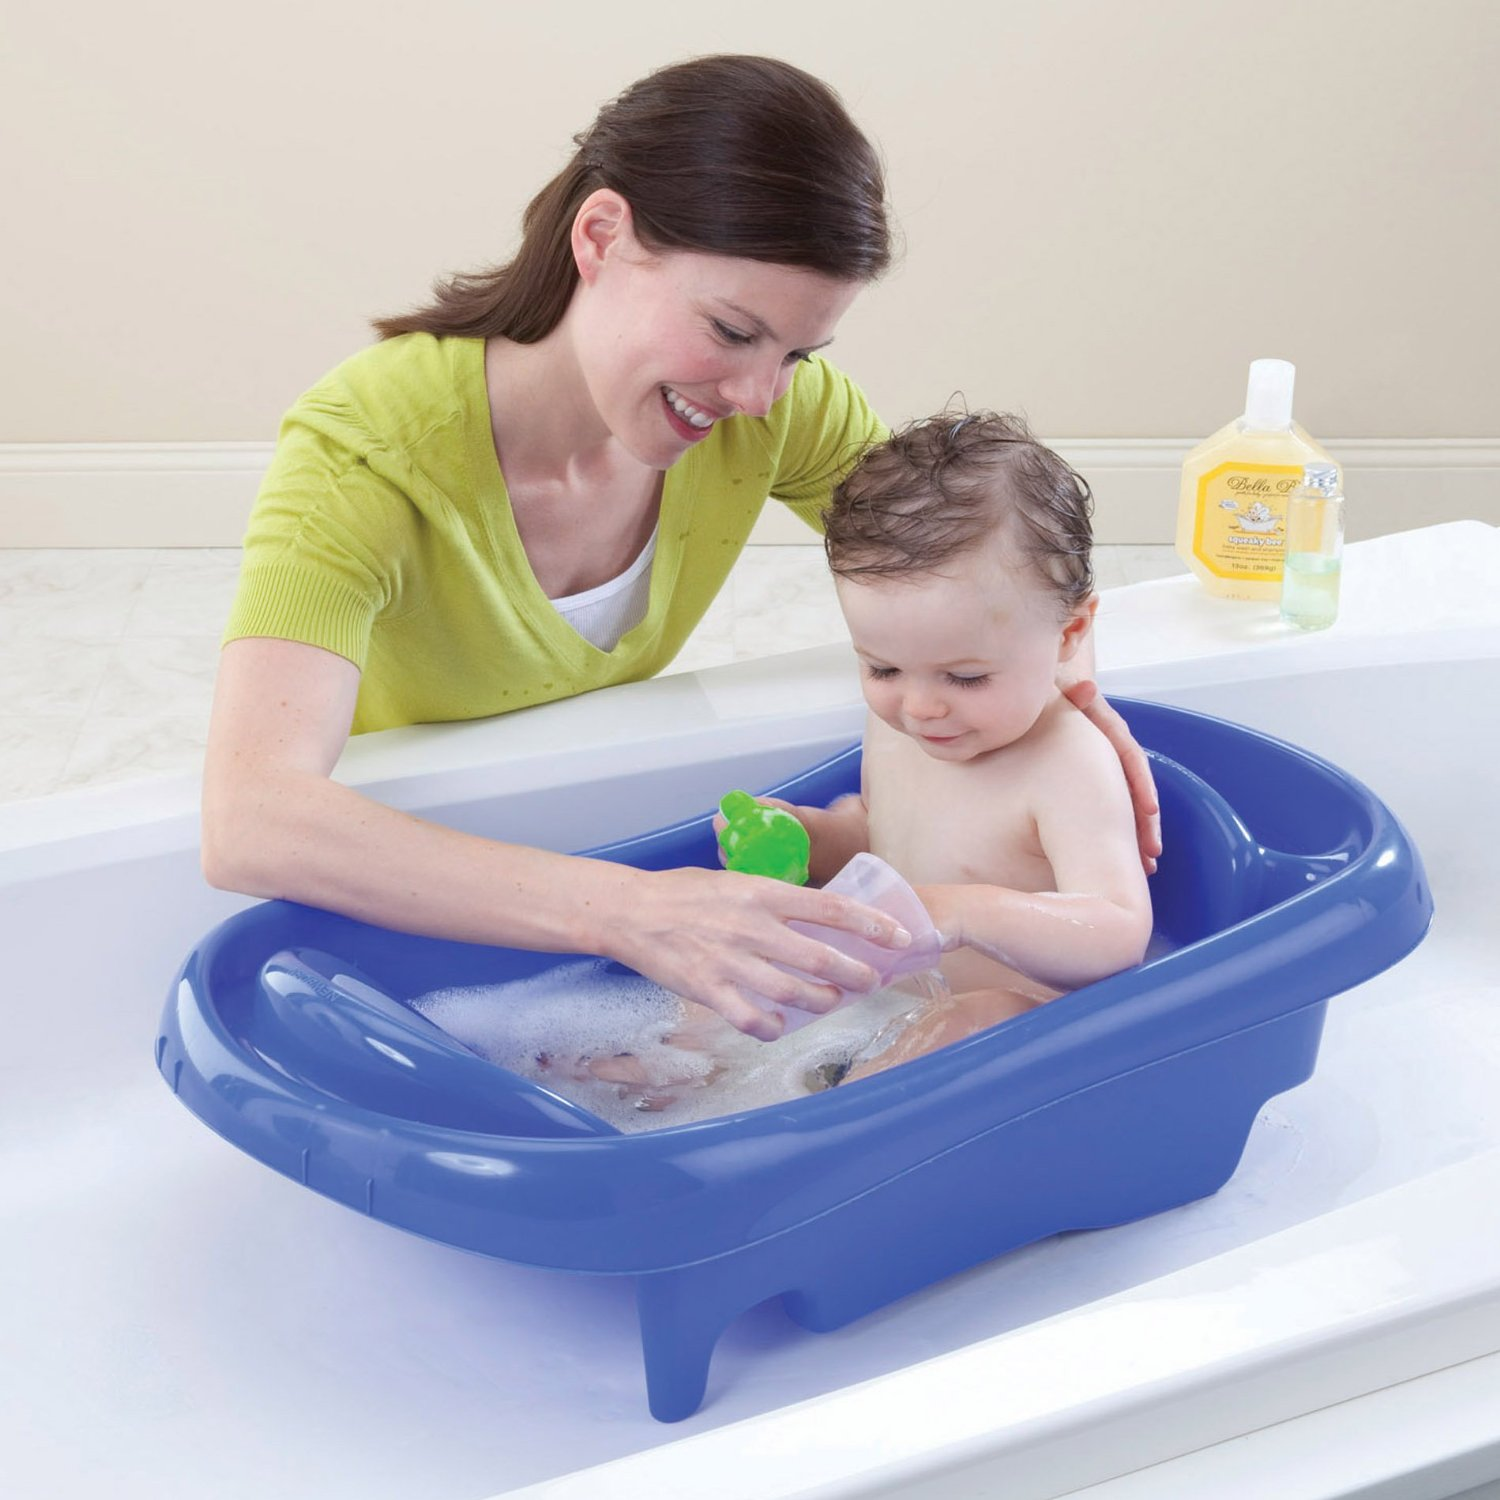 LO outgrown her baby bath? - BabyCenter